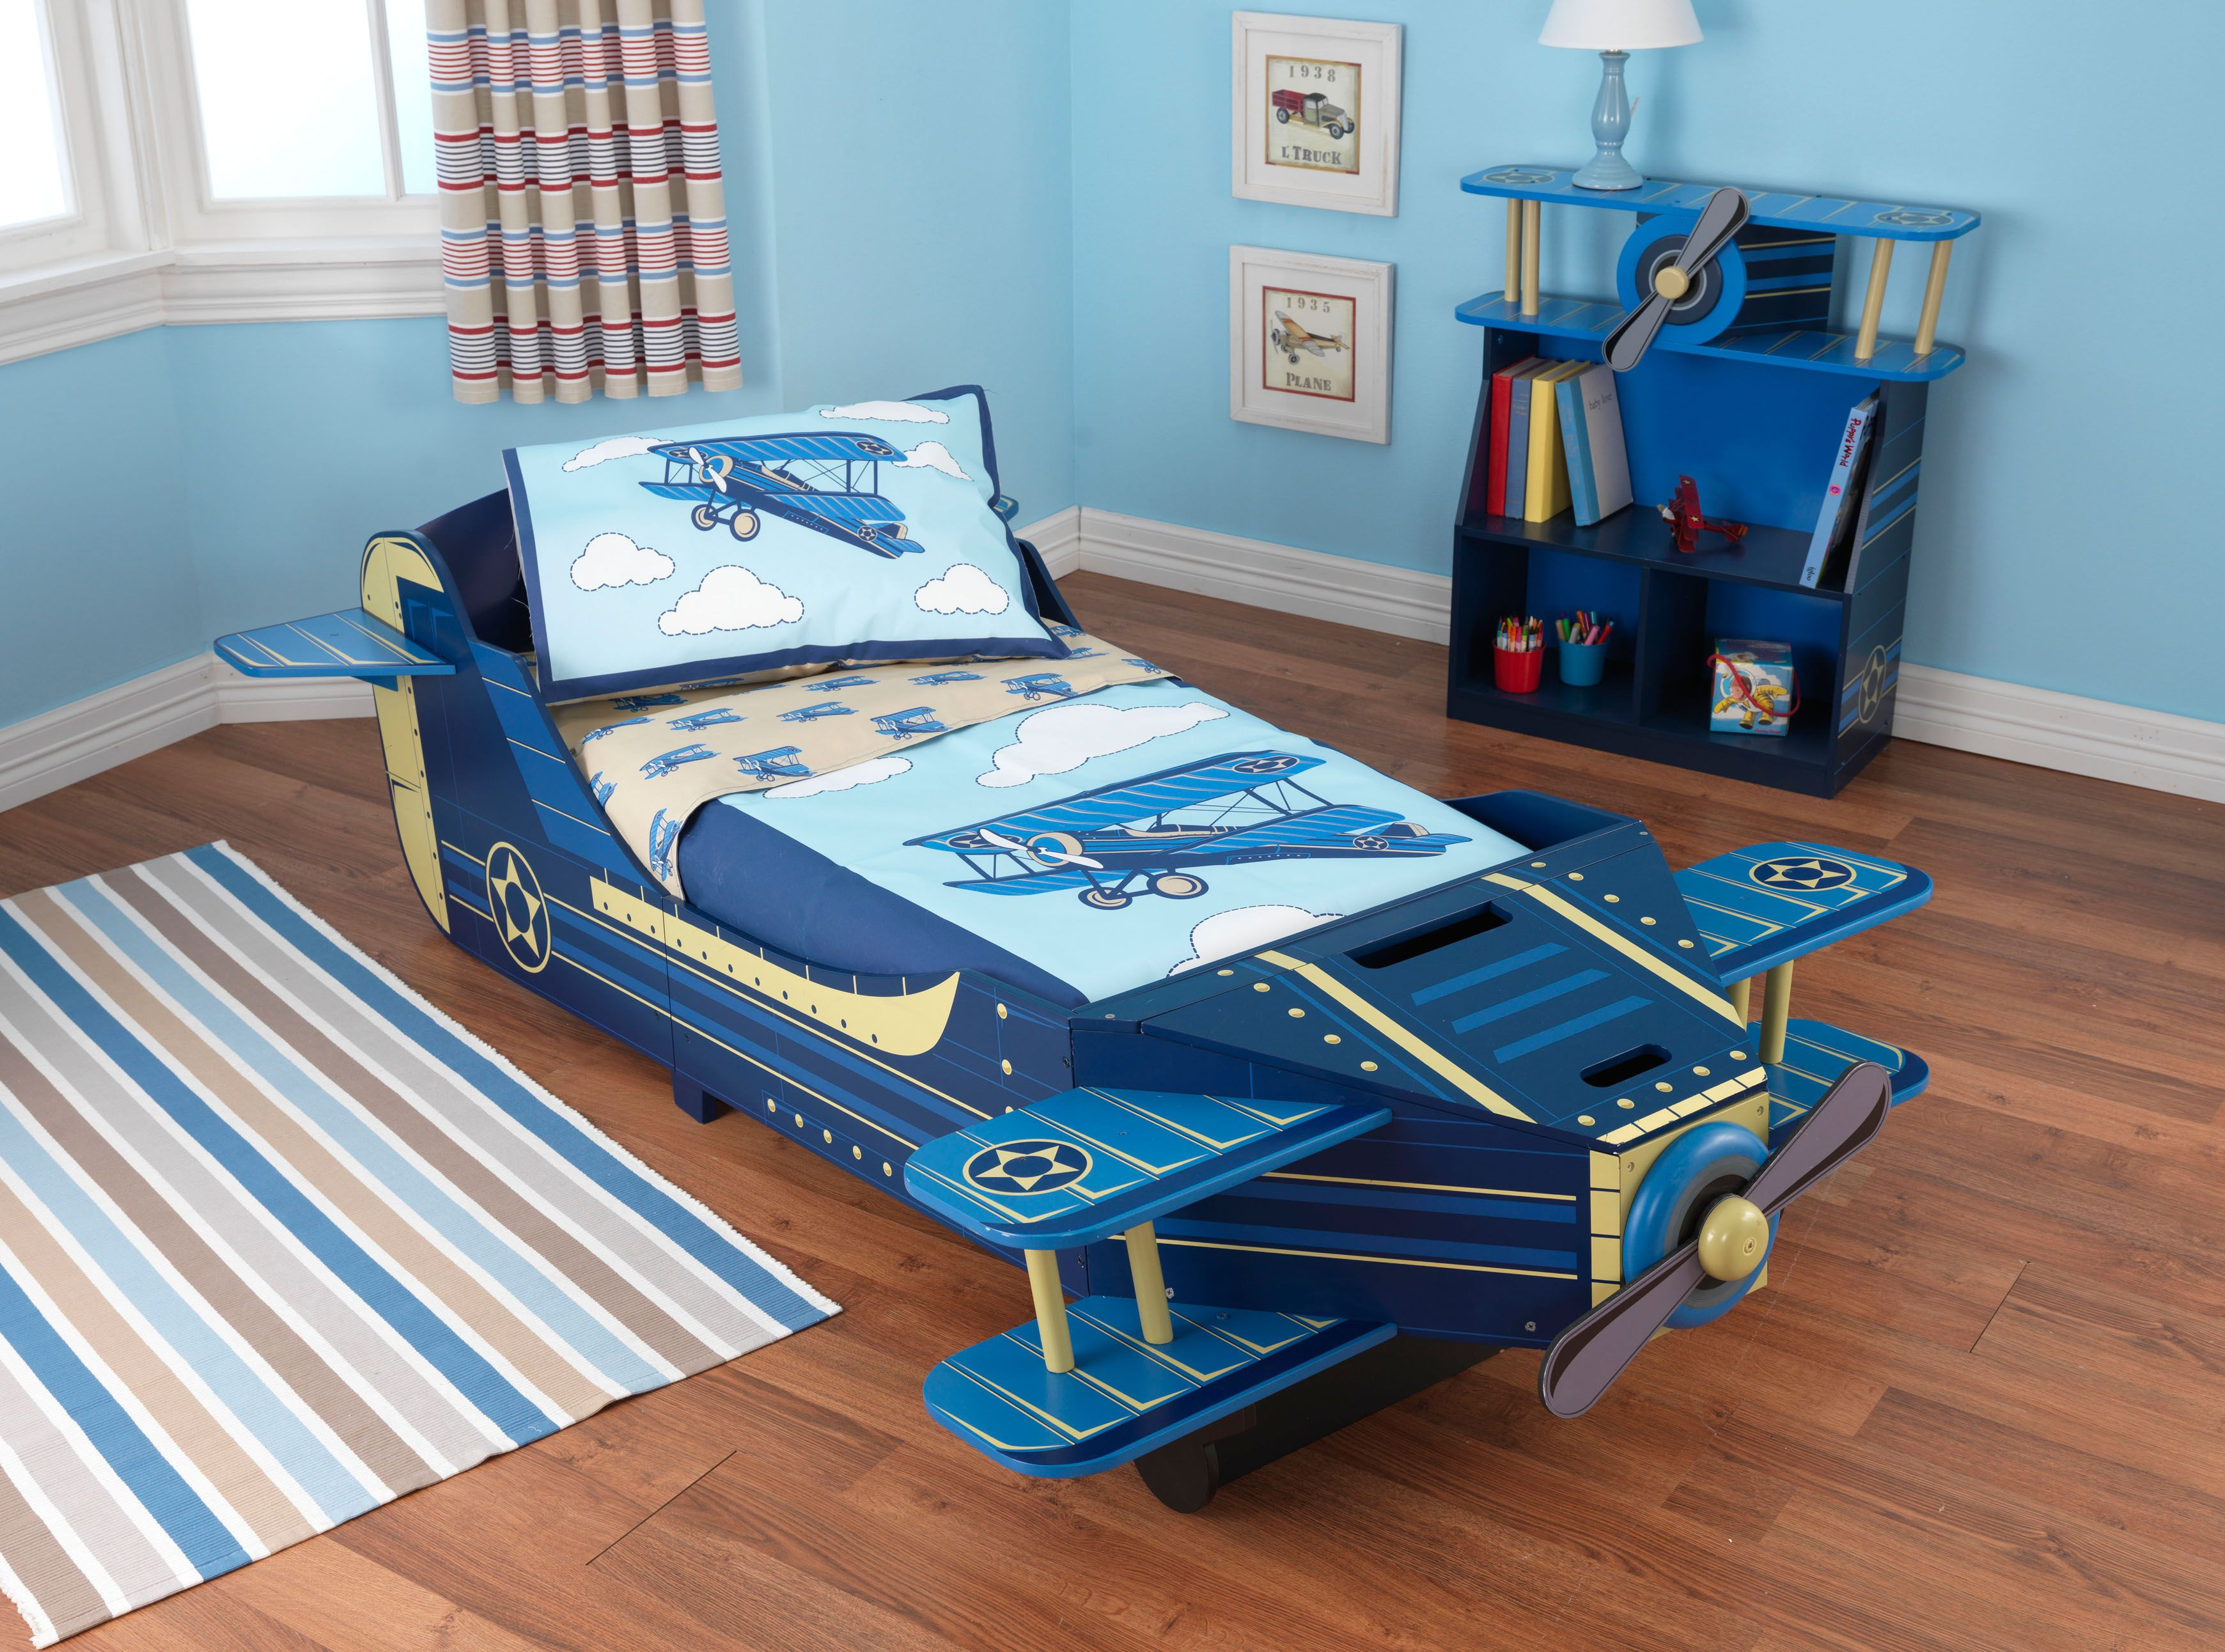 Pequenos Gigantes Muebles - My Son Will Love This Cute Airplane Bed Baby Stuff Pinterest[mjhdah]https://i.pinimg.com/originals/5b/94/f4/5b94f4ccc448240f5d96fb704e3685d1.jpg